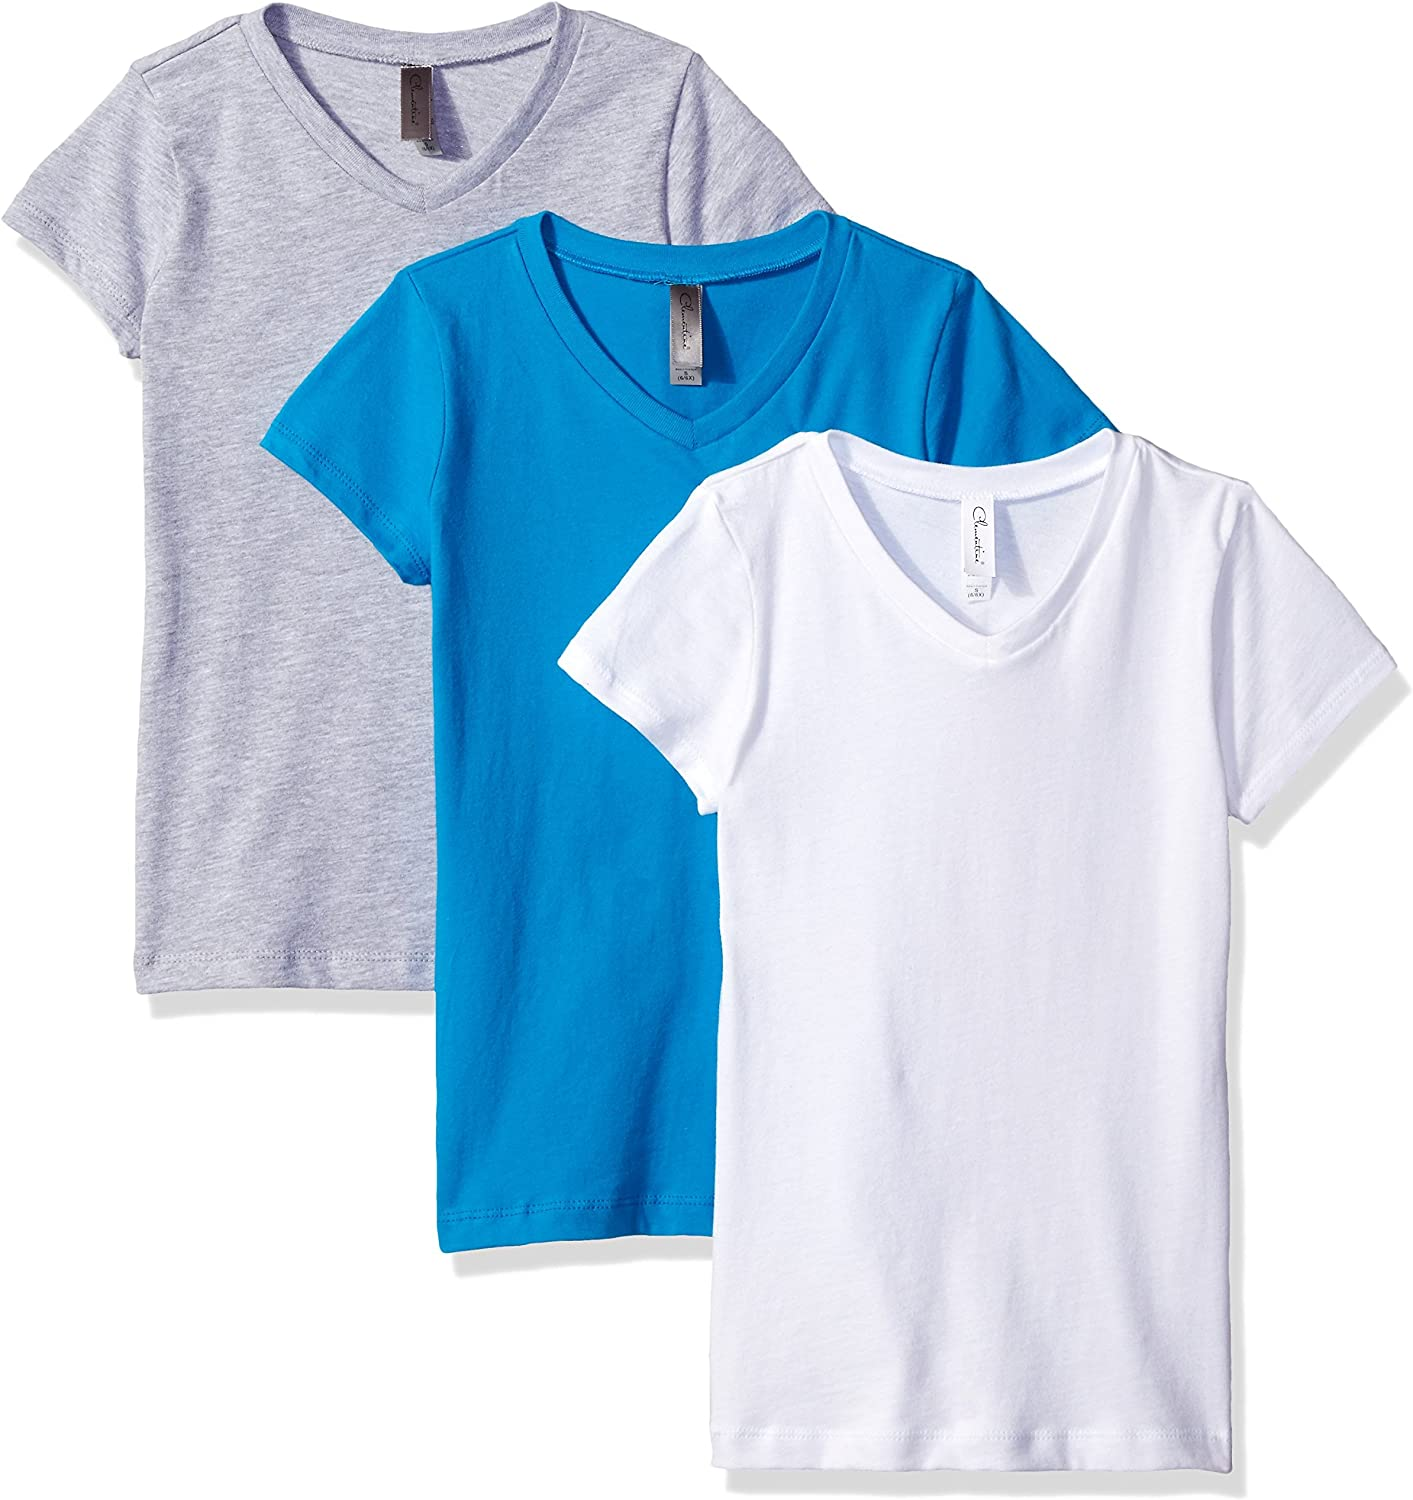 Clementine Apparel Girls Everyday V-Neck Tee 3-Pack